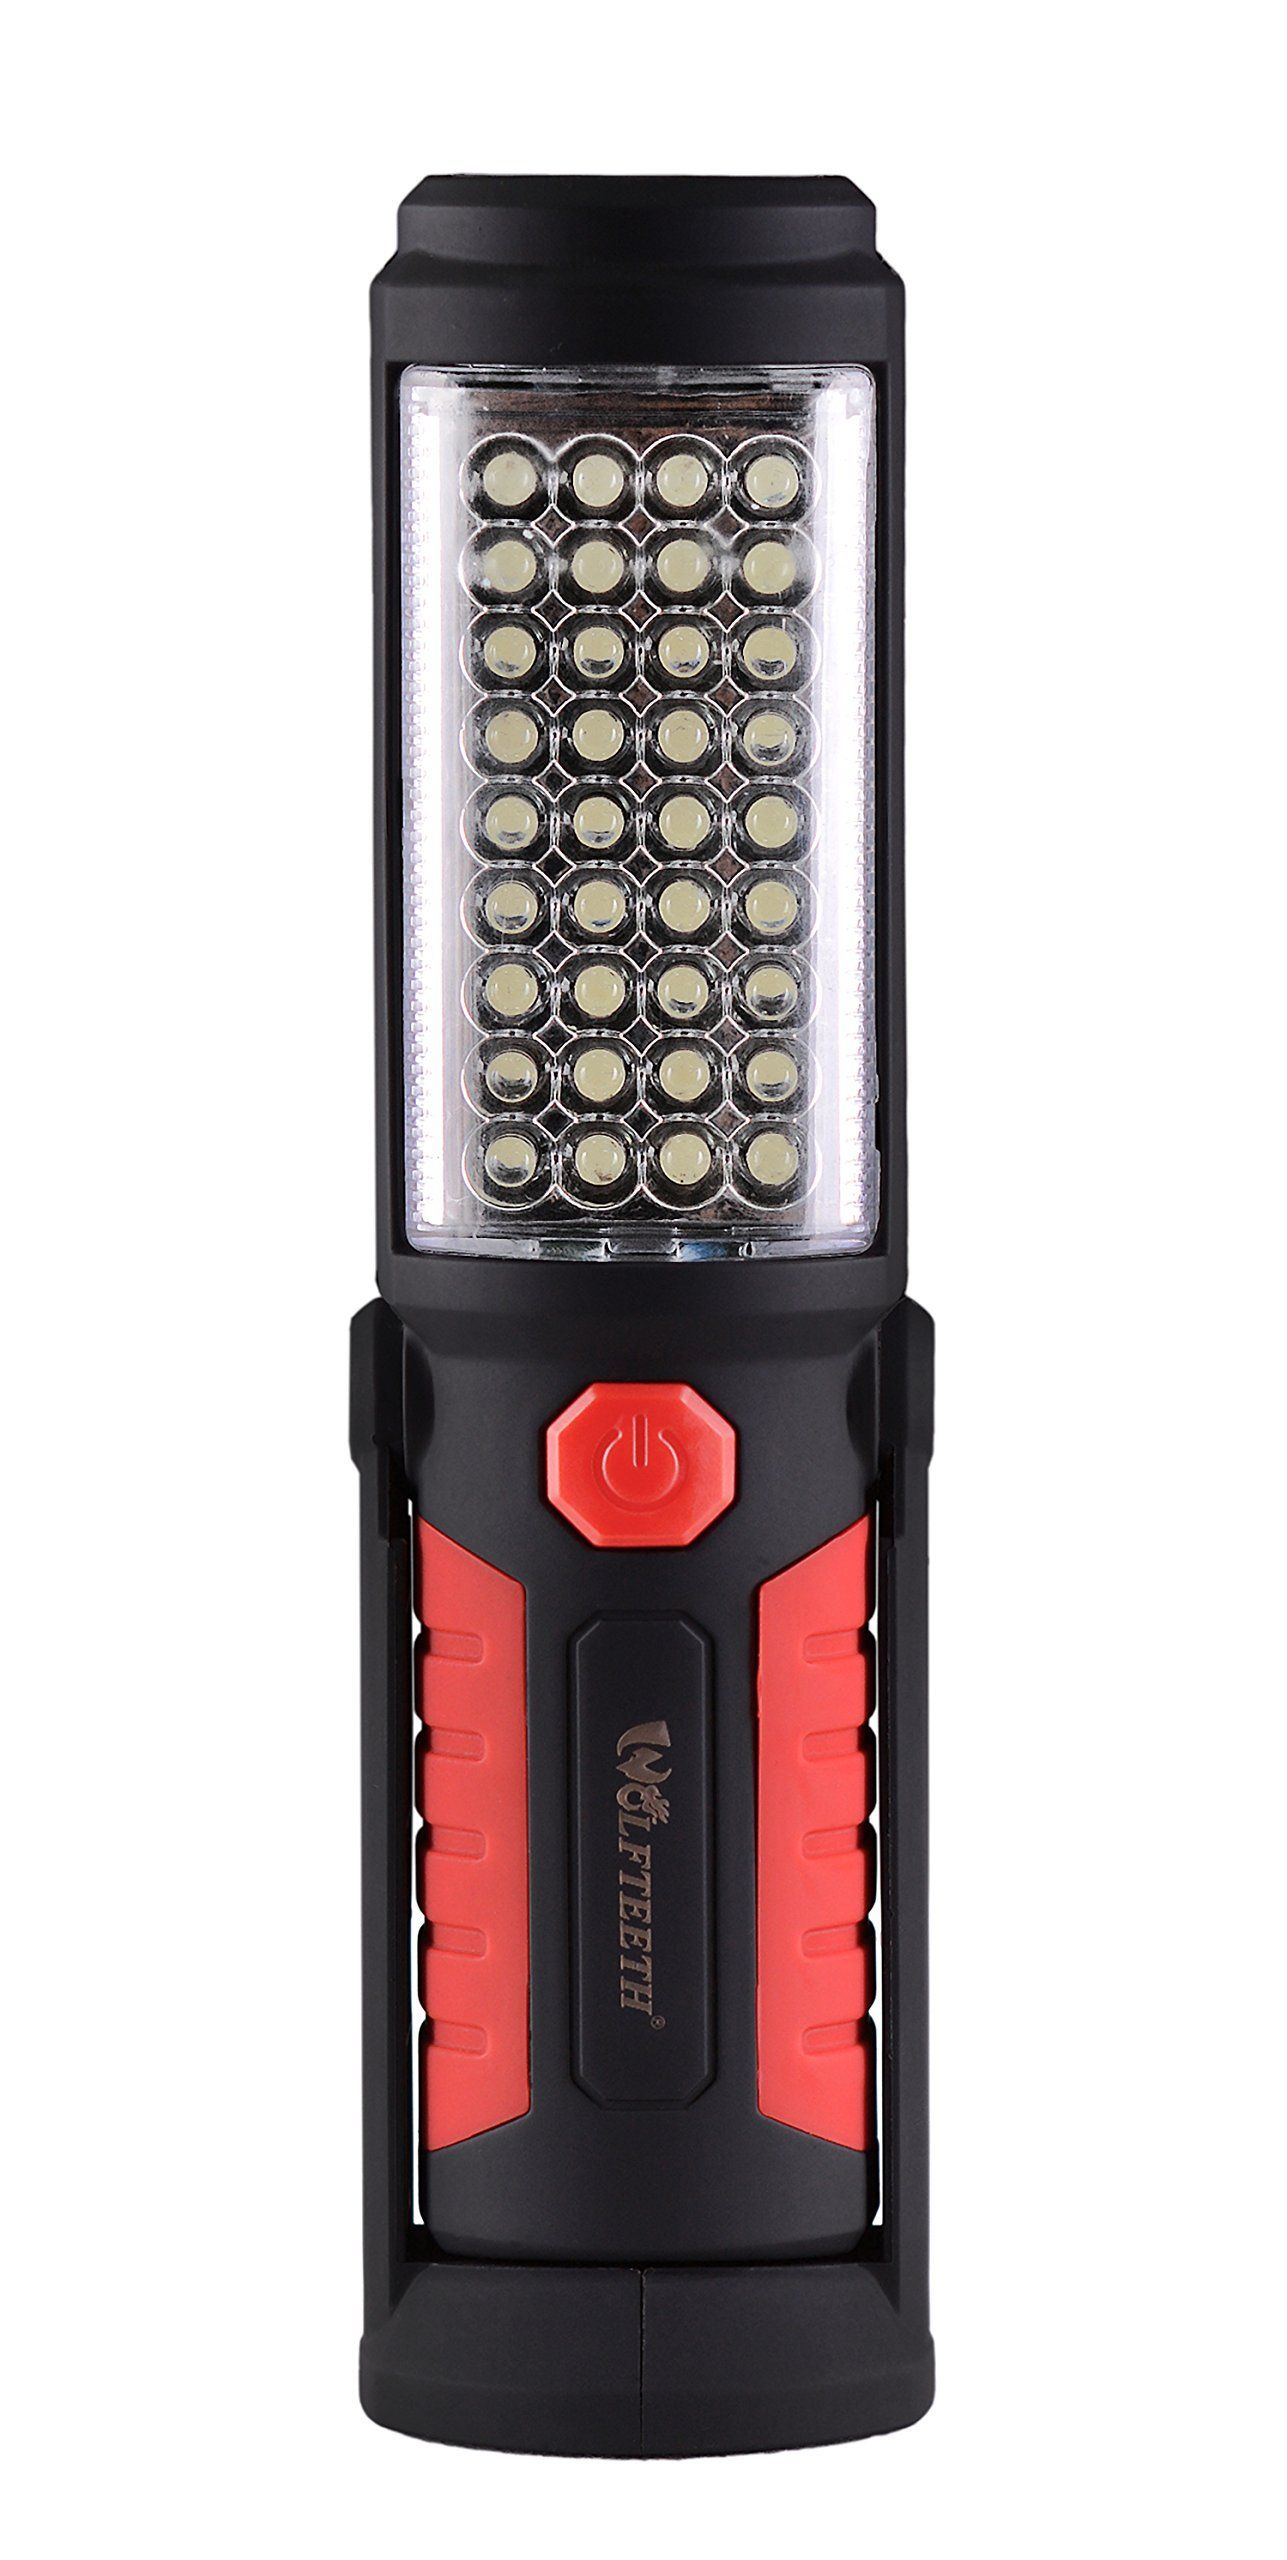 Wolfteeth 36+5 LED Torch Inspection Lamp Camping Light,Hands-Free Garage for and